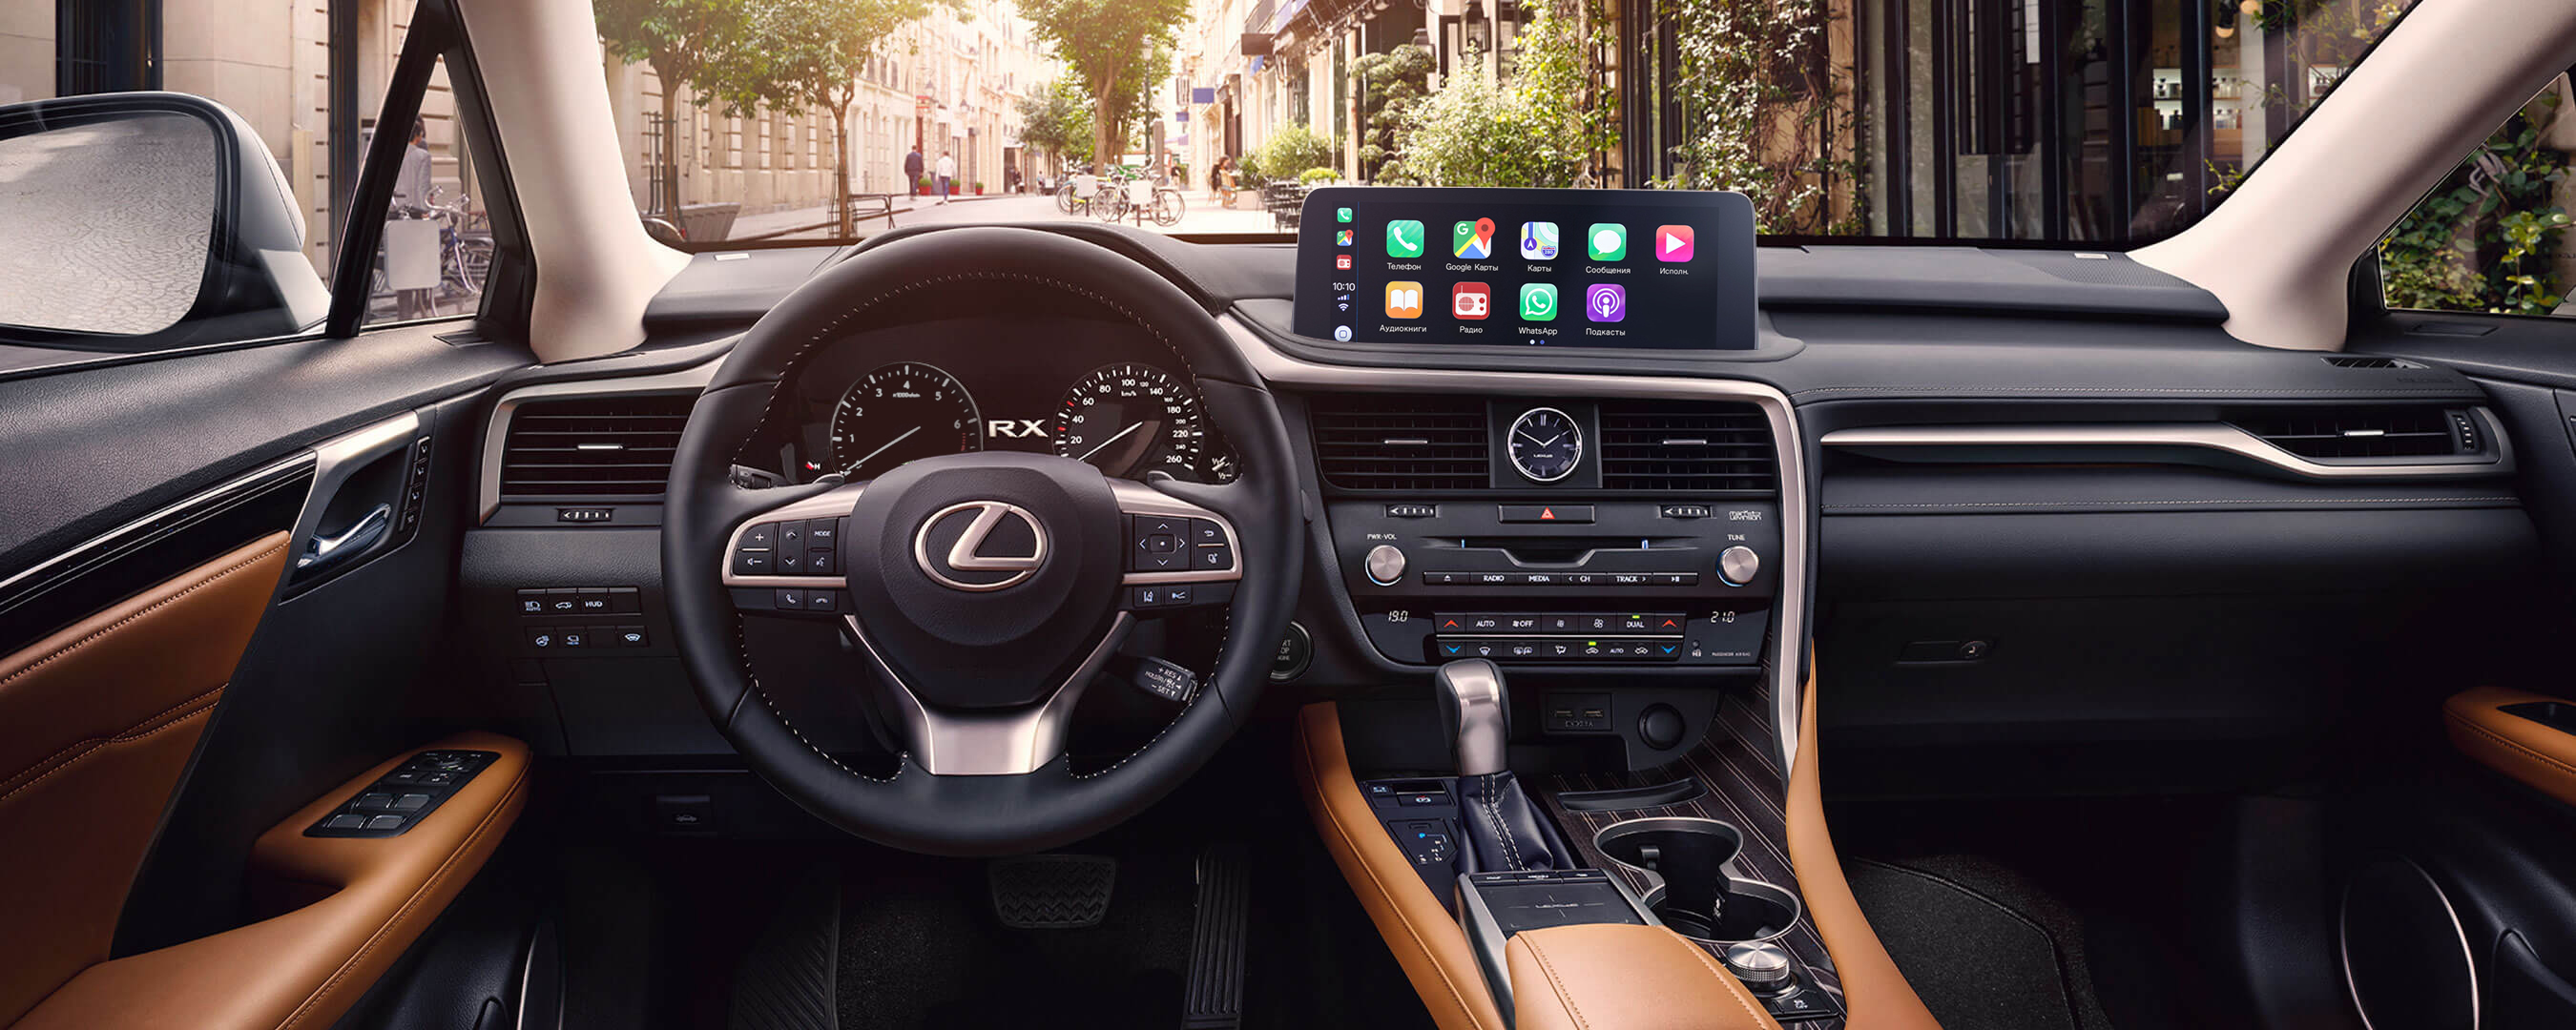 2019 lexus rxl experience front interior